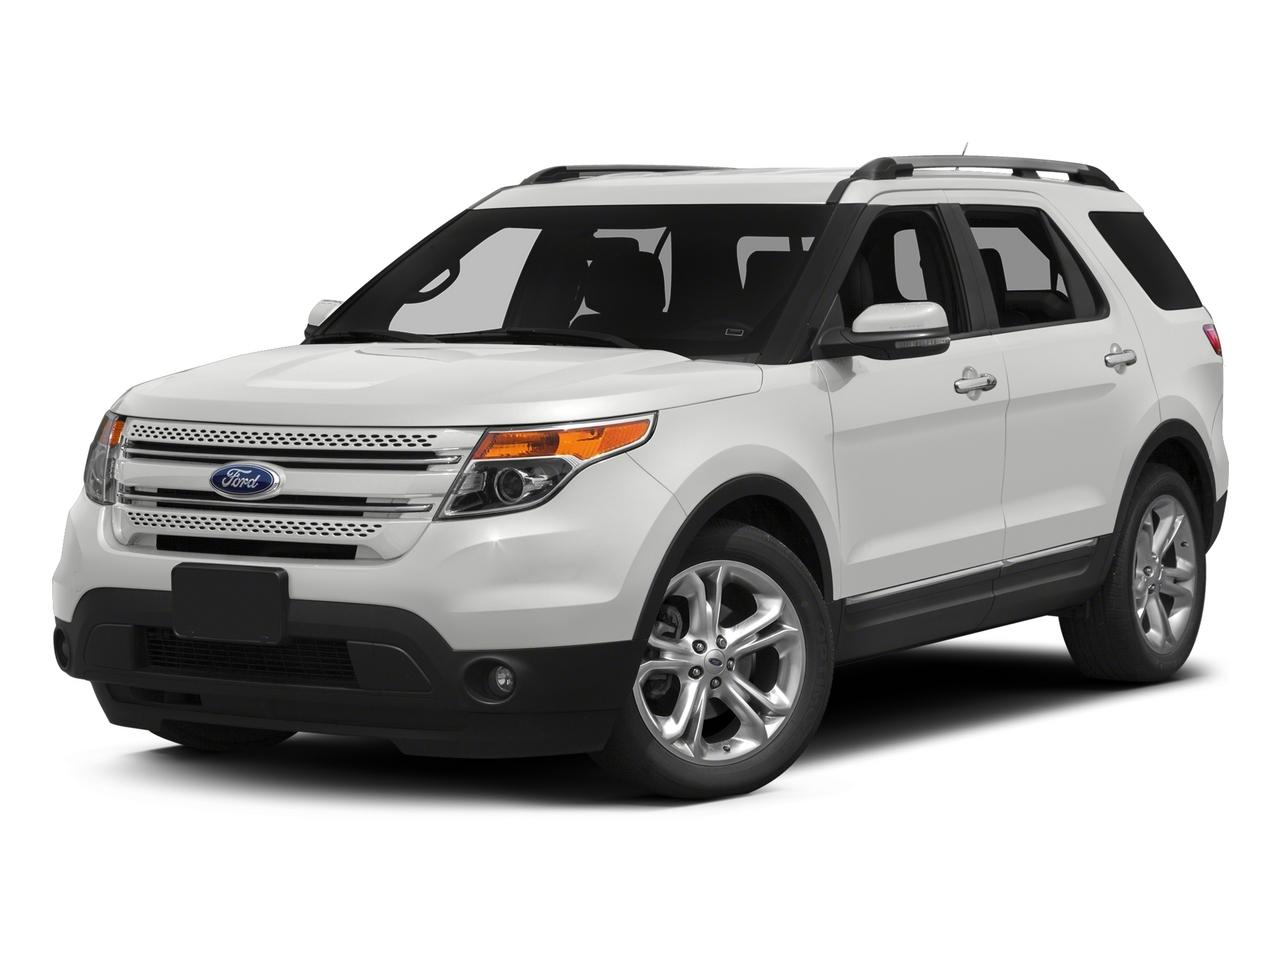 2015 Ford Explorer Vehicle Photo in Frederick, MD 21704